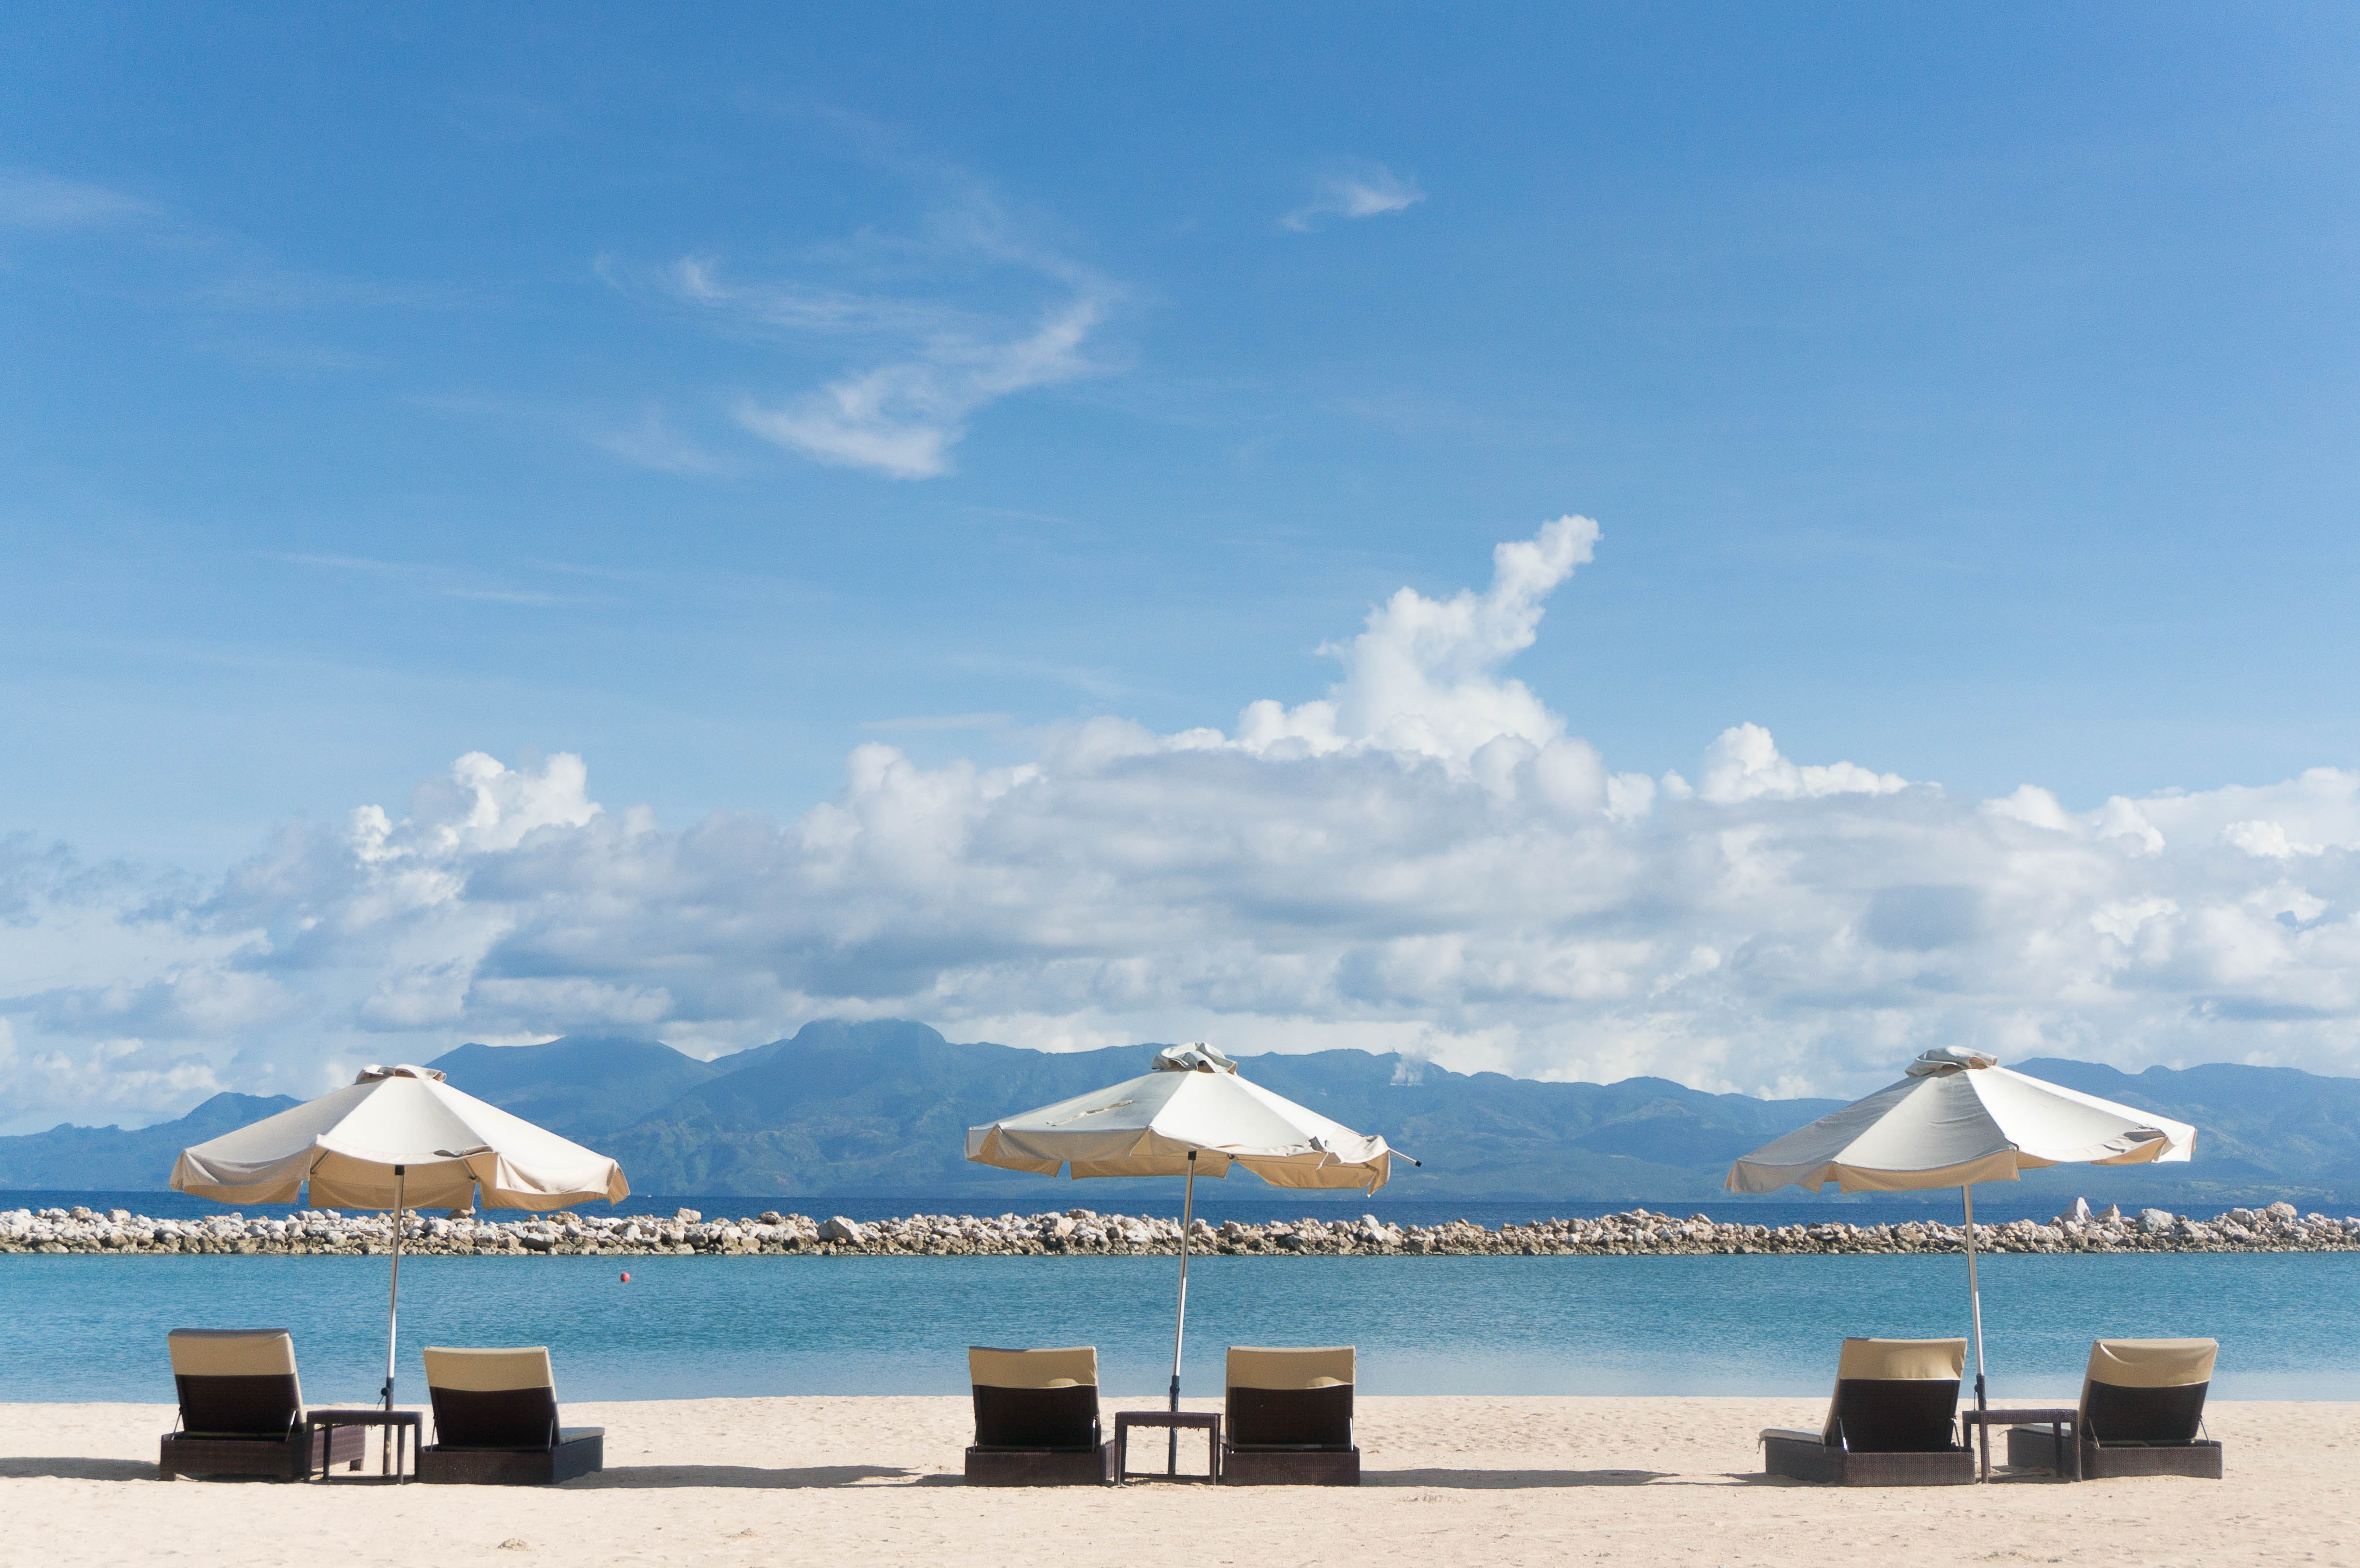 Deck chairs under umbrellas on a sunny beach with view on tall hills